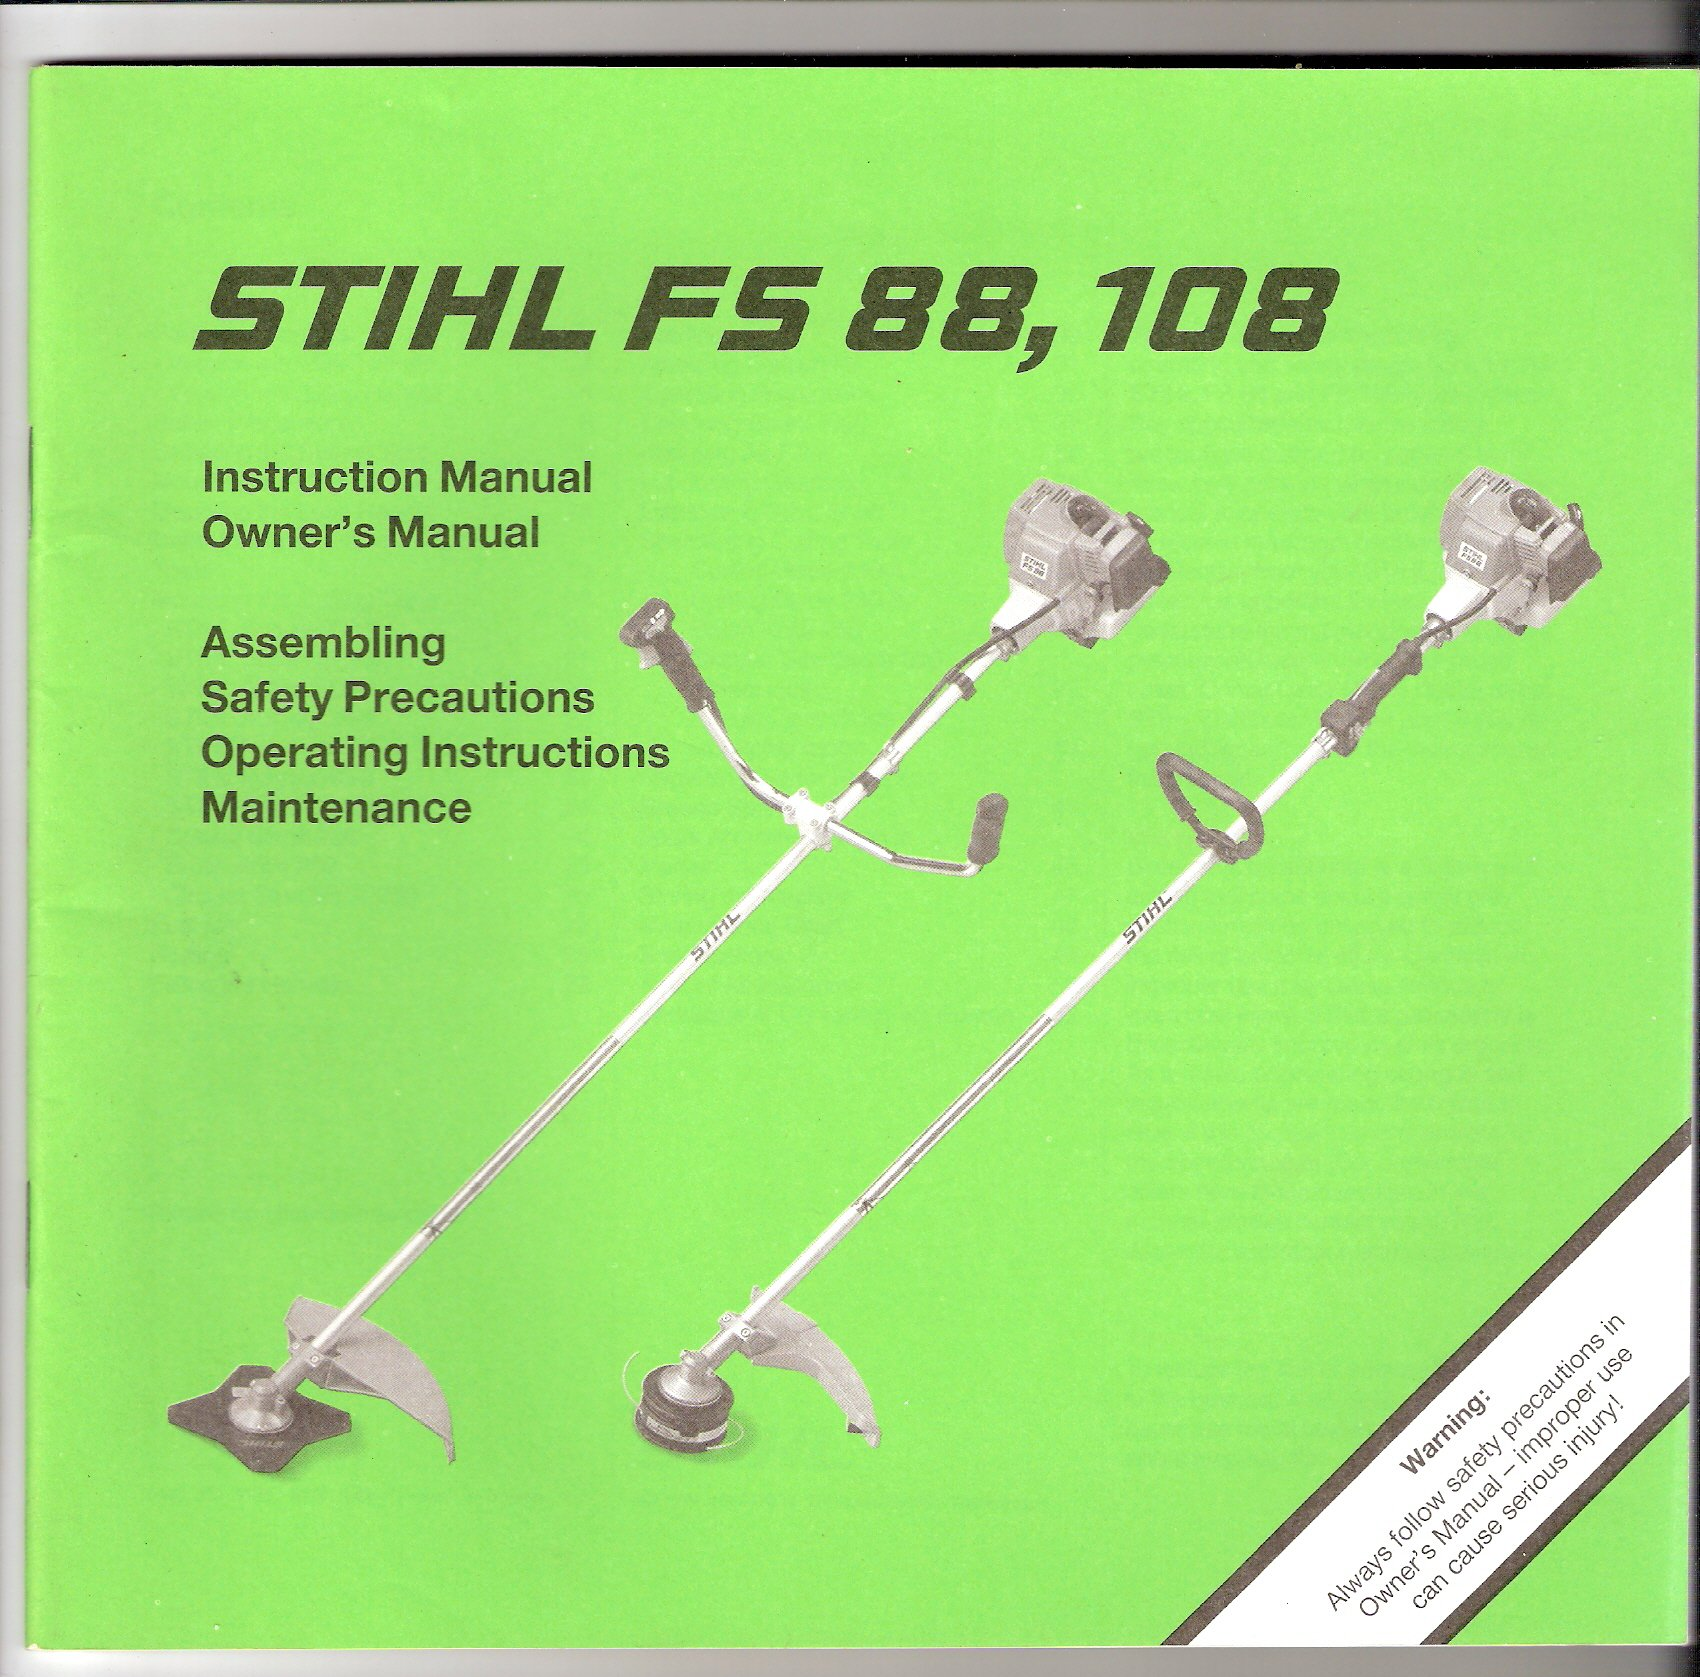 Stihl Instruction Manual Business, Office & Industrial Tractor Manuals & Publications